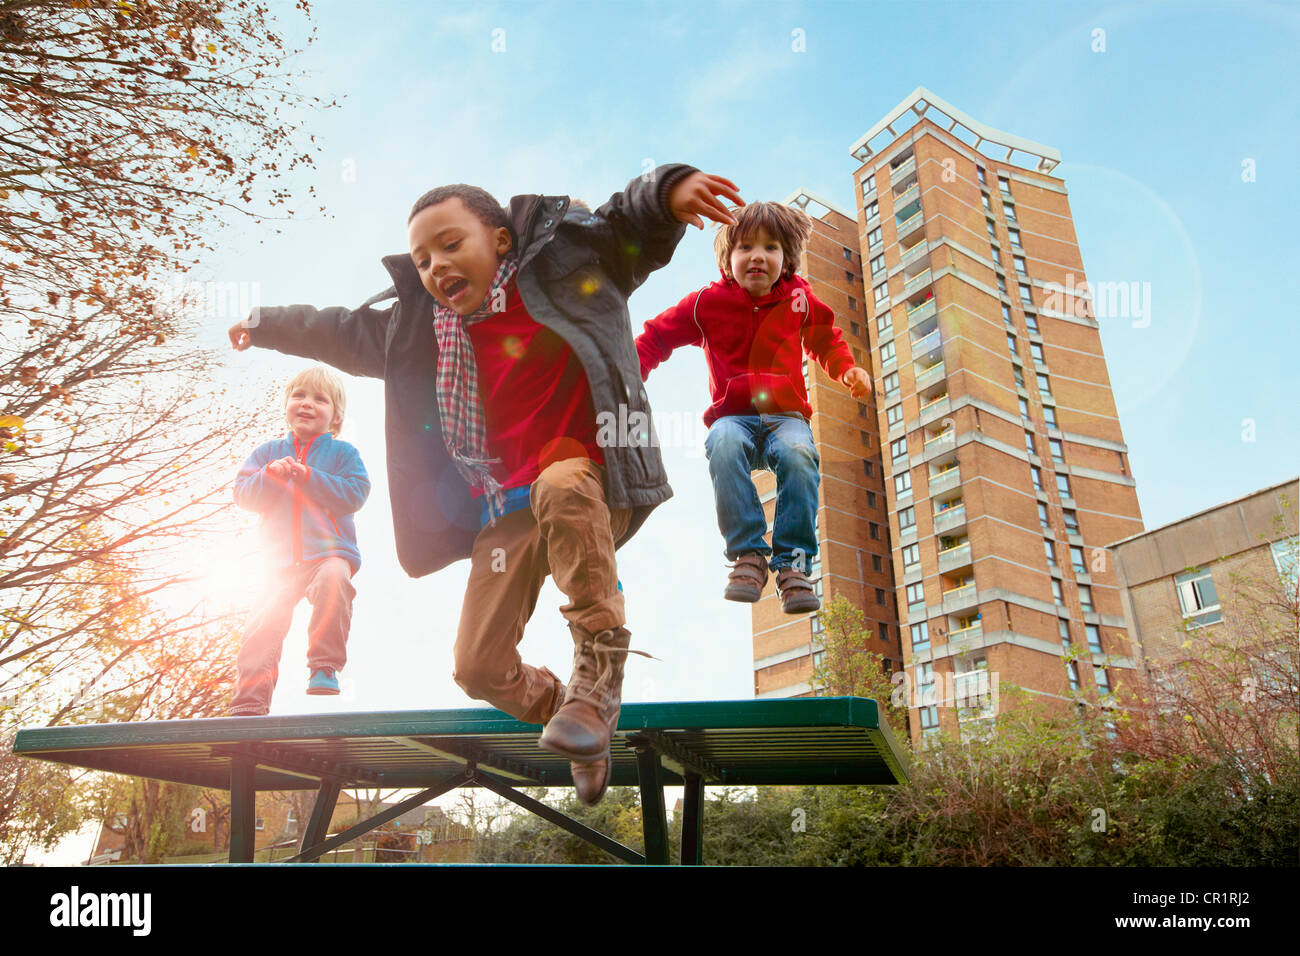 Children jumping for joy in park - Stock Image